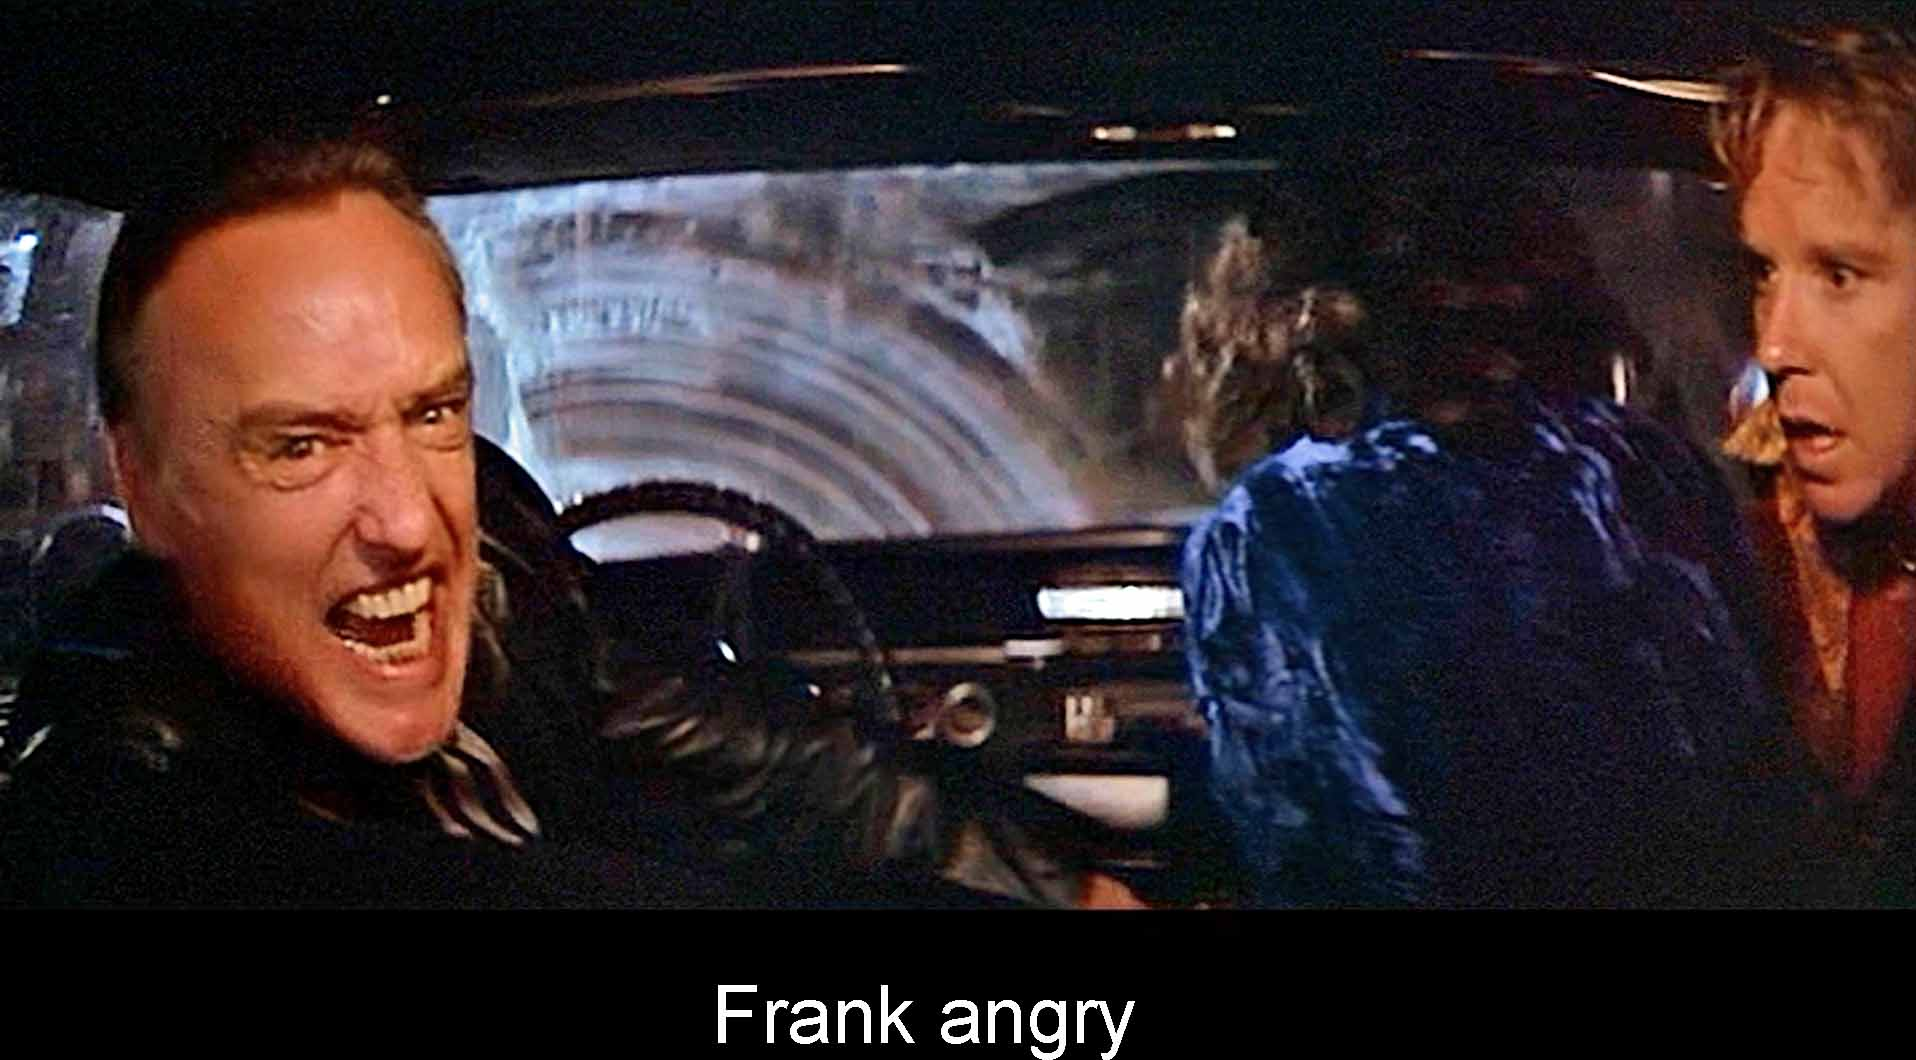 Frank angry